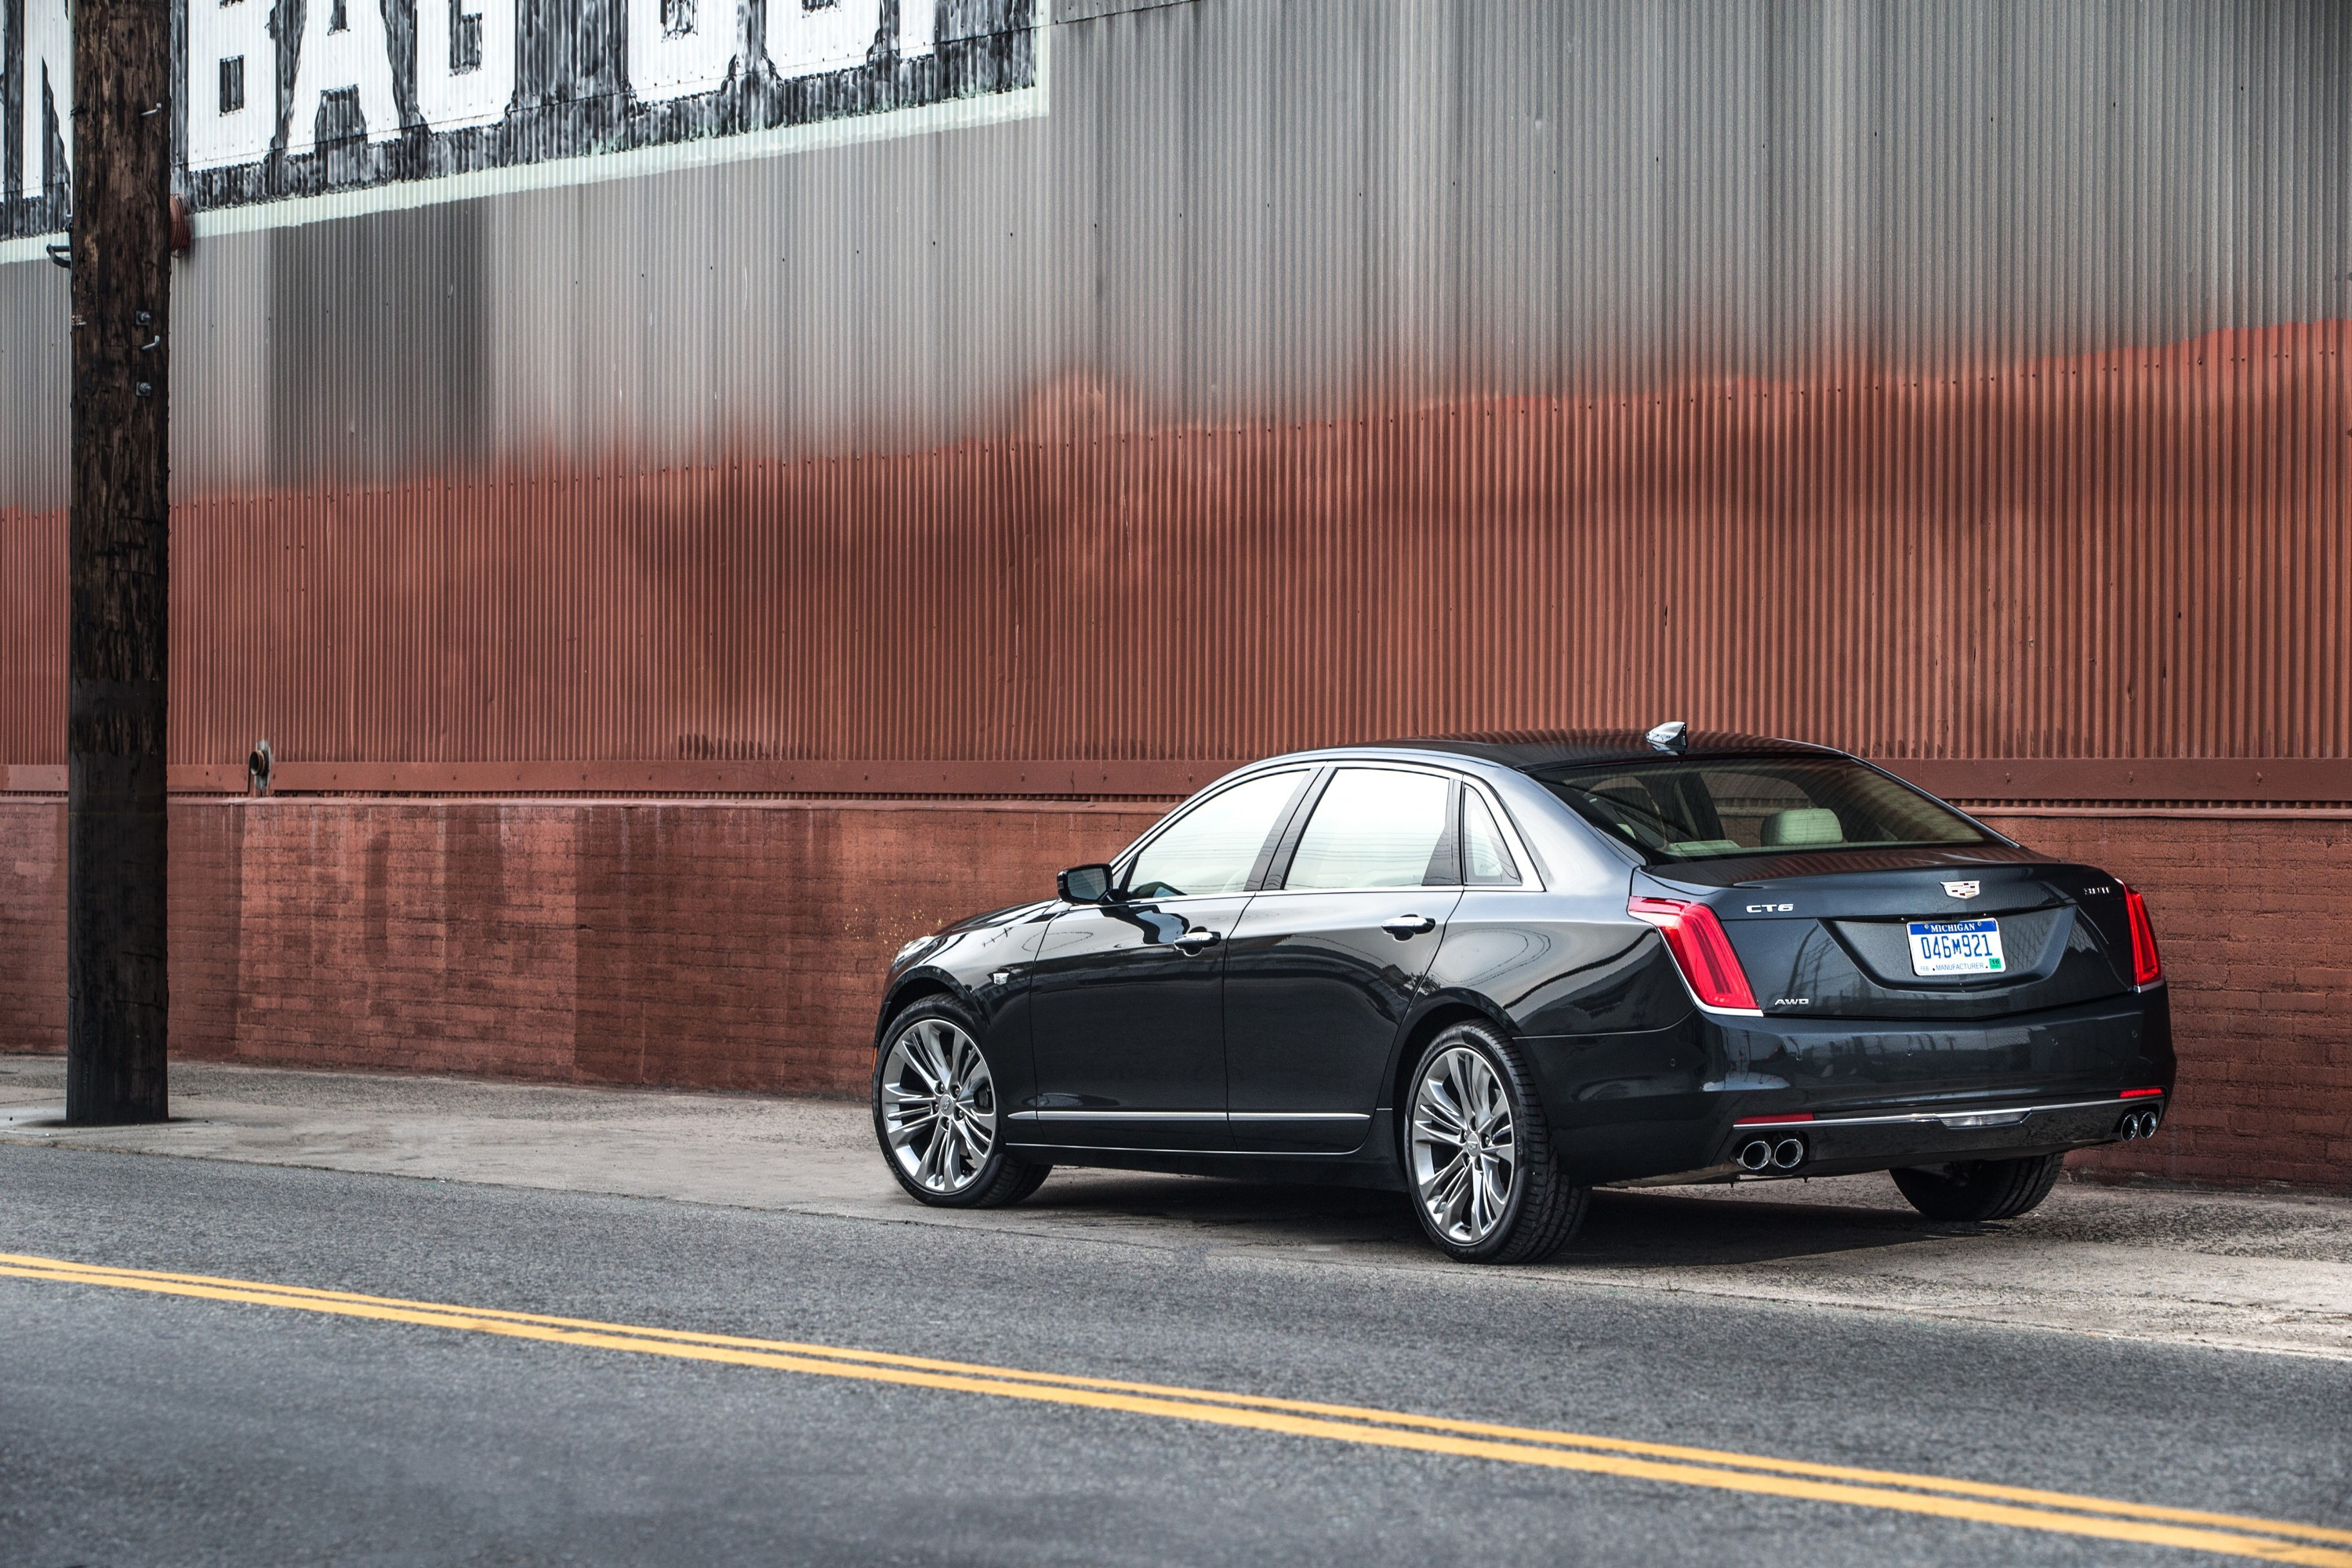 Cadillac CT6 Updated For 2017 MY, Twin-Turbo LT5 V8